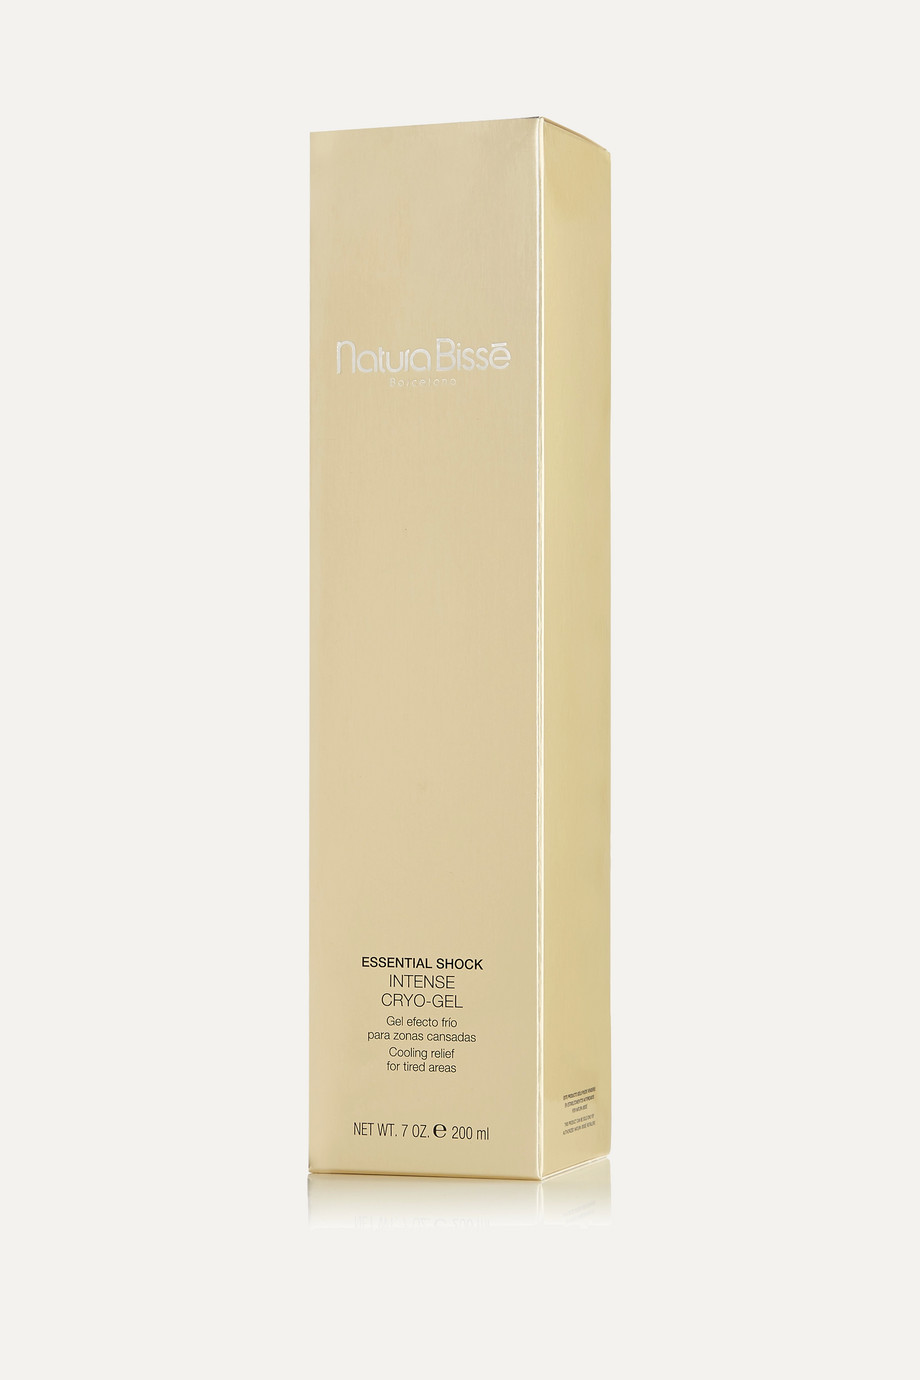 Natura Bissé Essential Shock Intense Cryo-Gel, 200ml